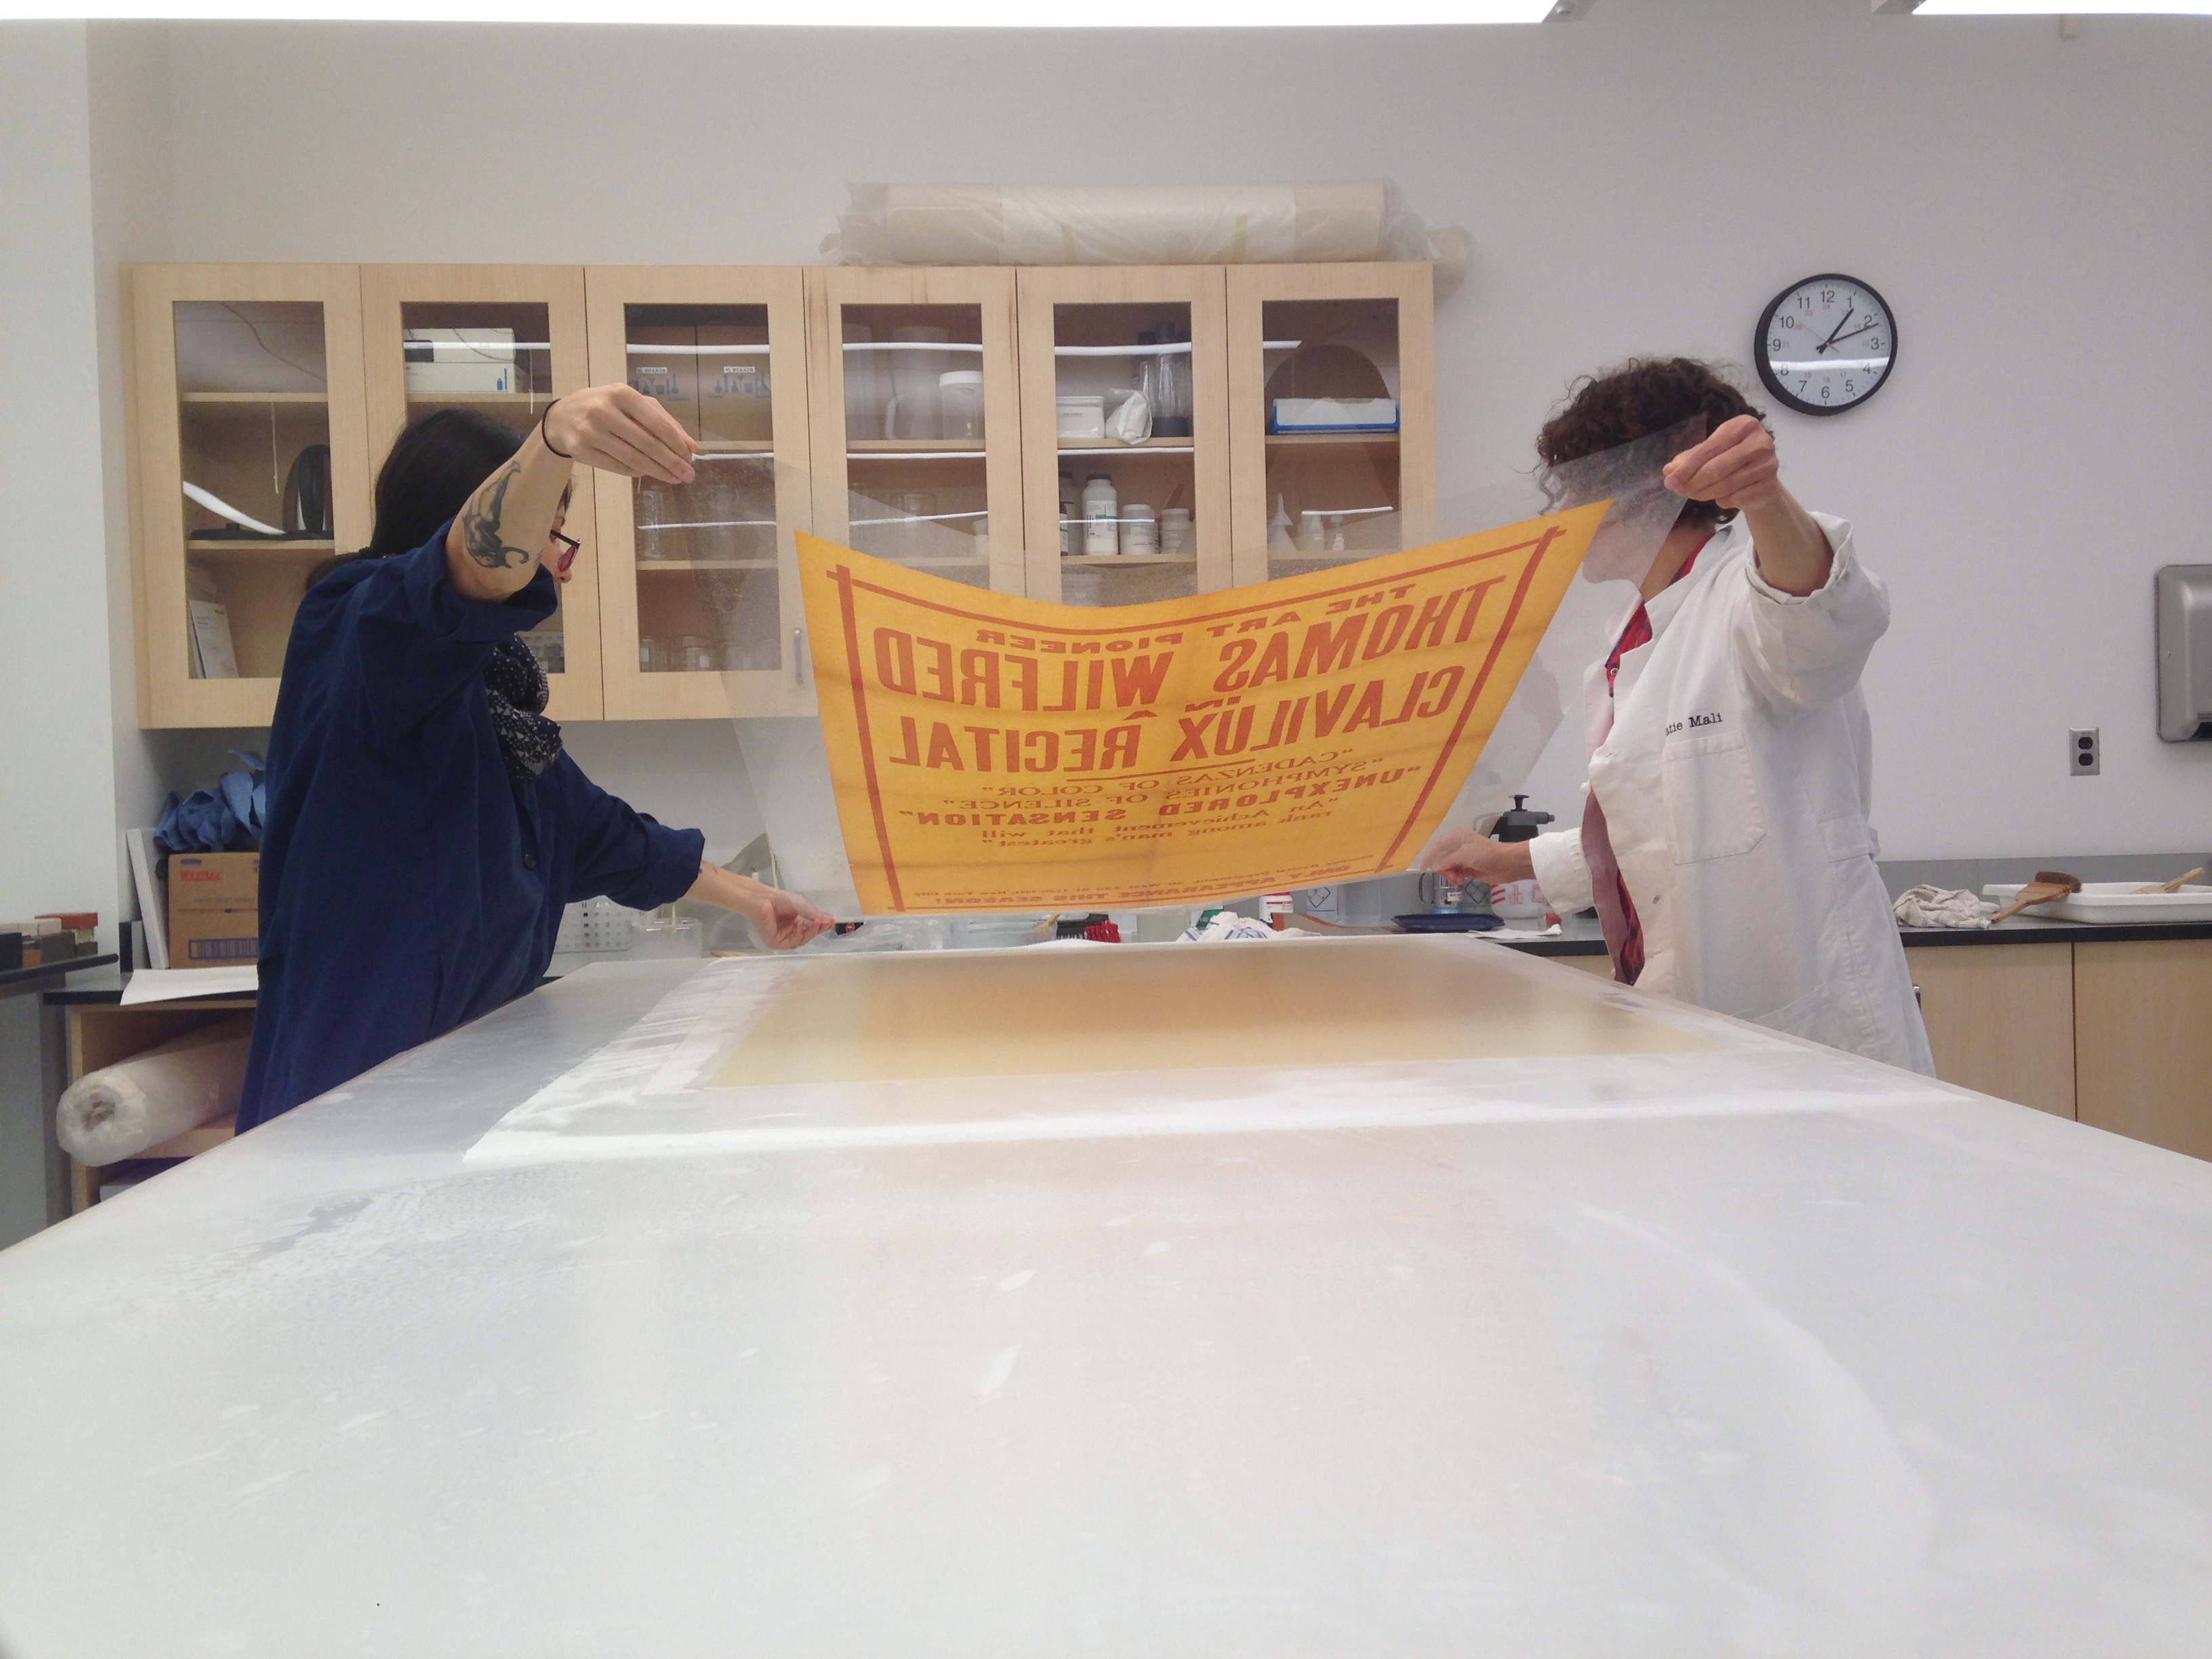 conservation staff line a brittle broadside